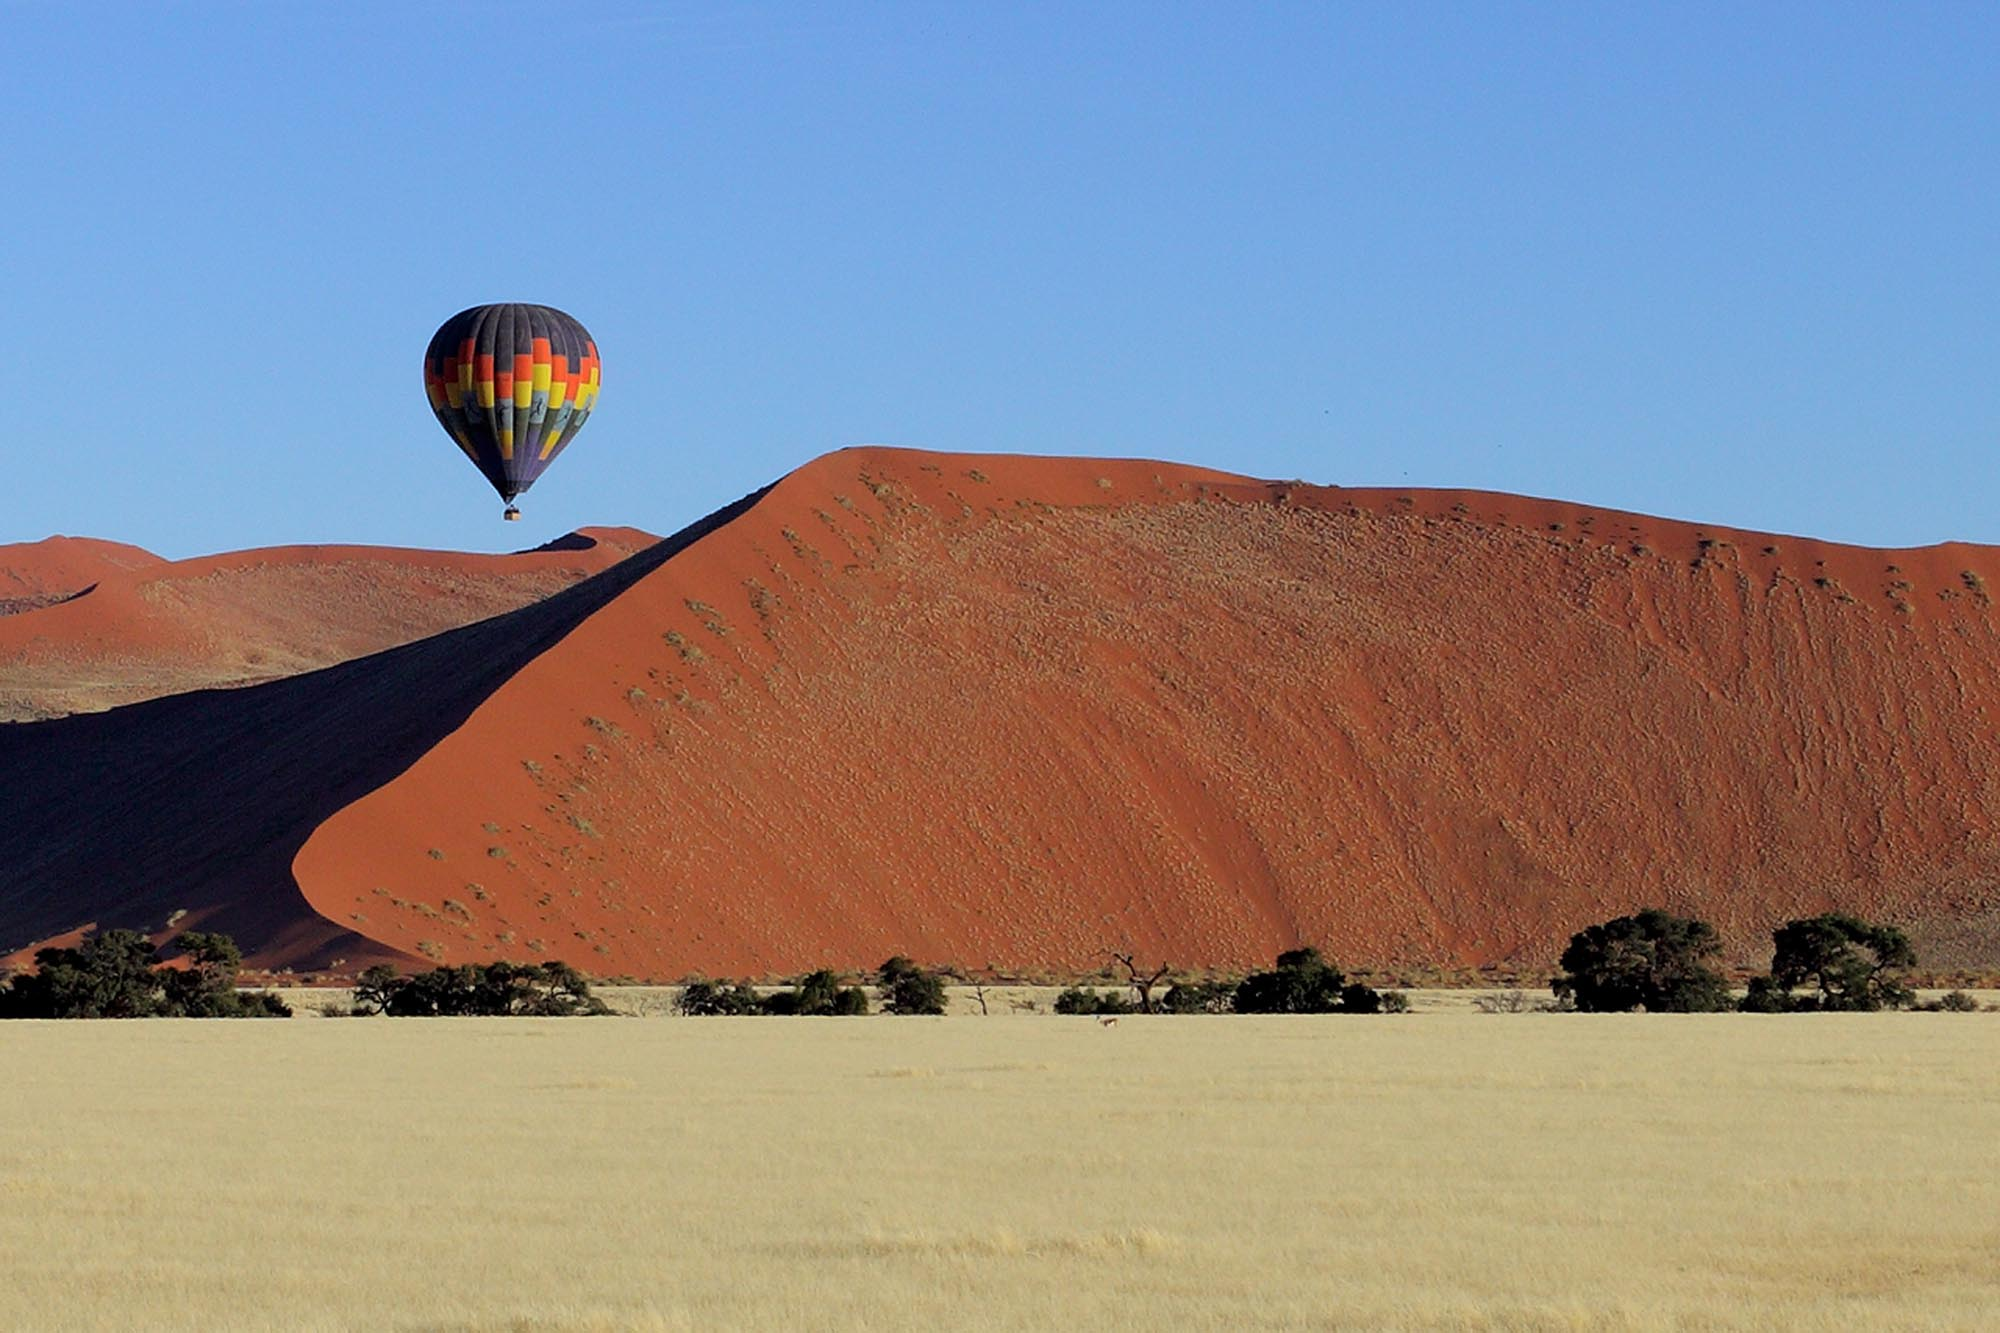 Air balloon in Namibia - Namibia - Deserts and Dunescapes